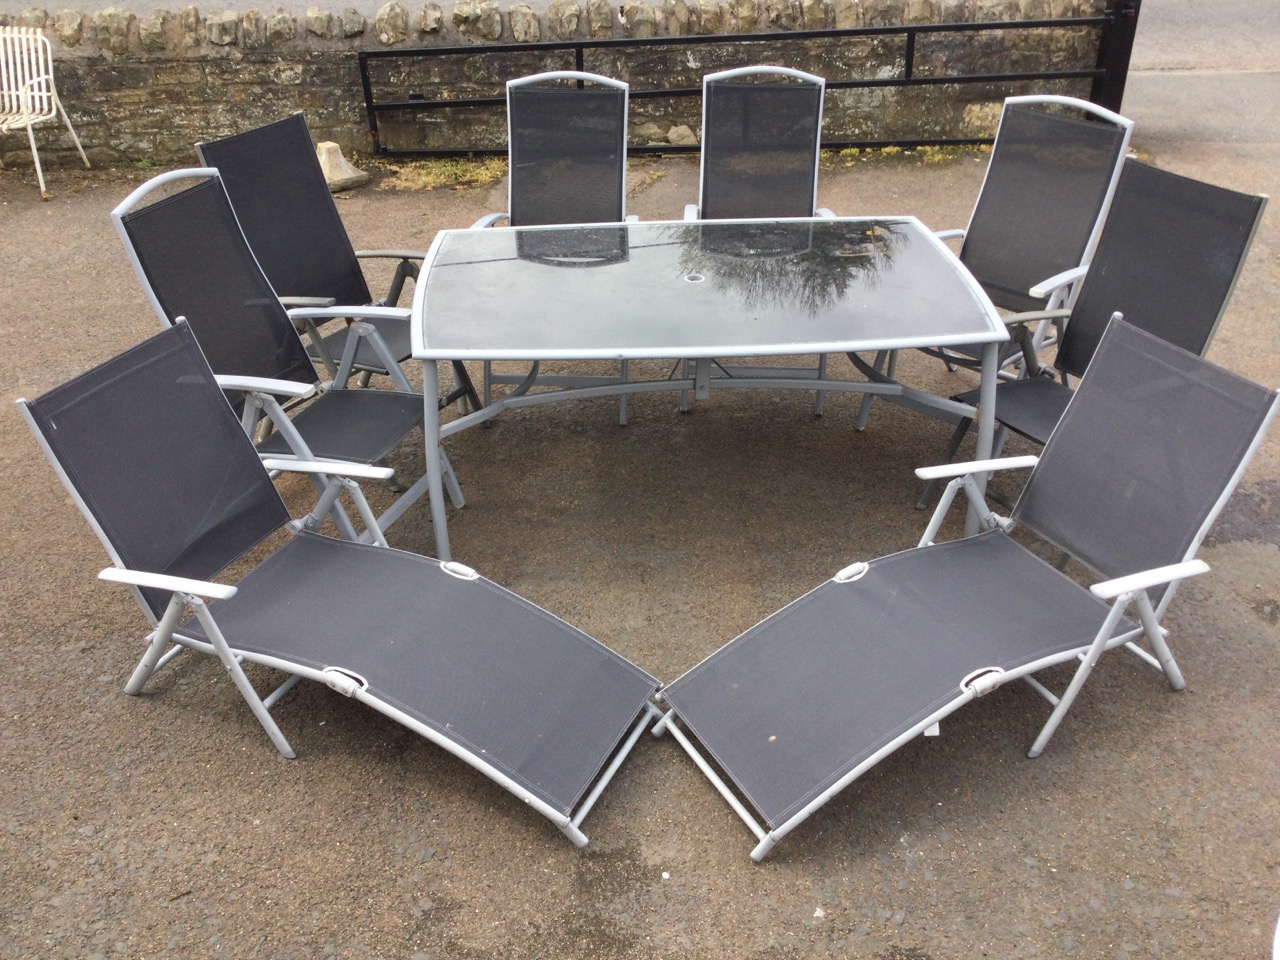 A contemporary rectangular garden table & chair set, the folding chairs with fabric backs & seats - Image 3 of 3